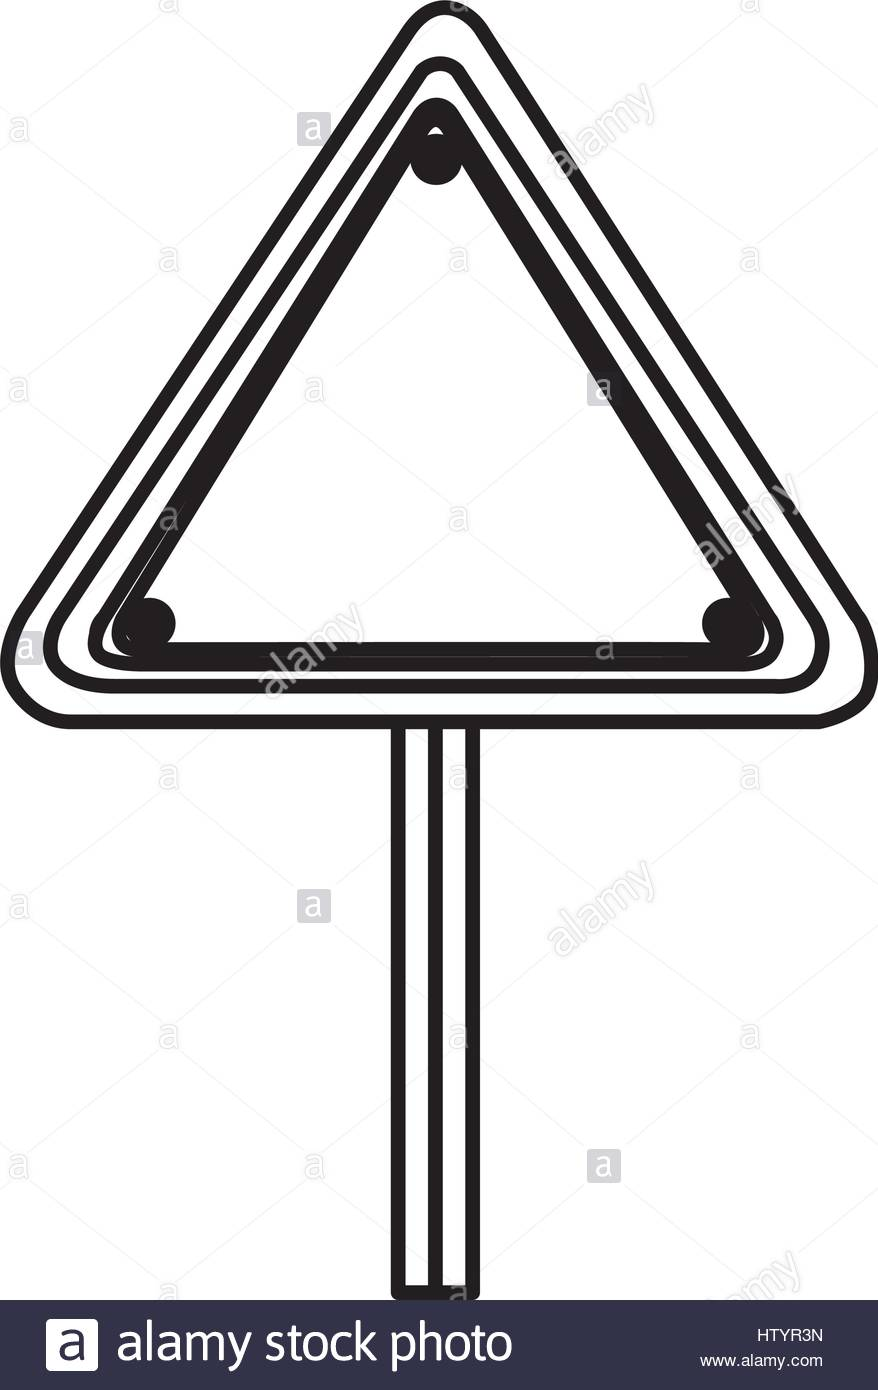 878x1390 Silhouette Triangle Shape Traffic Sign With Base Pole Stock Vector